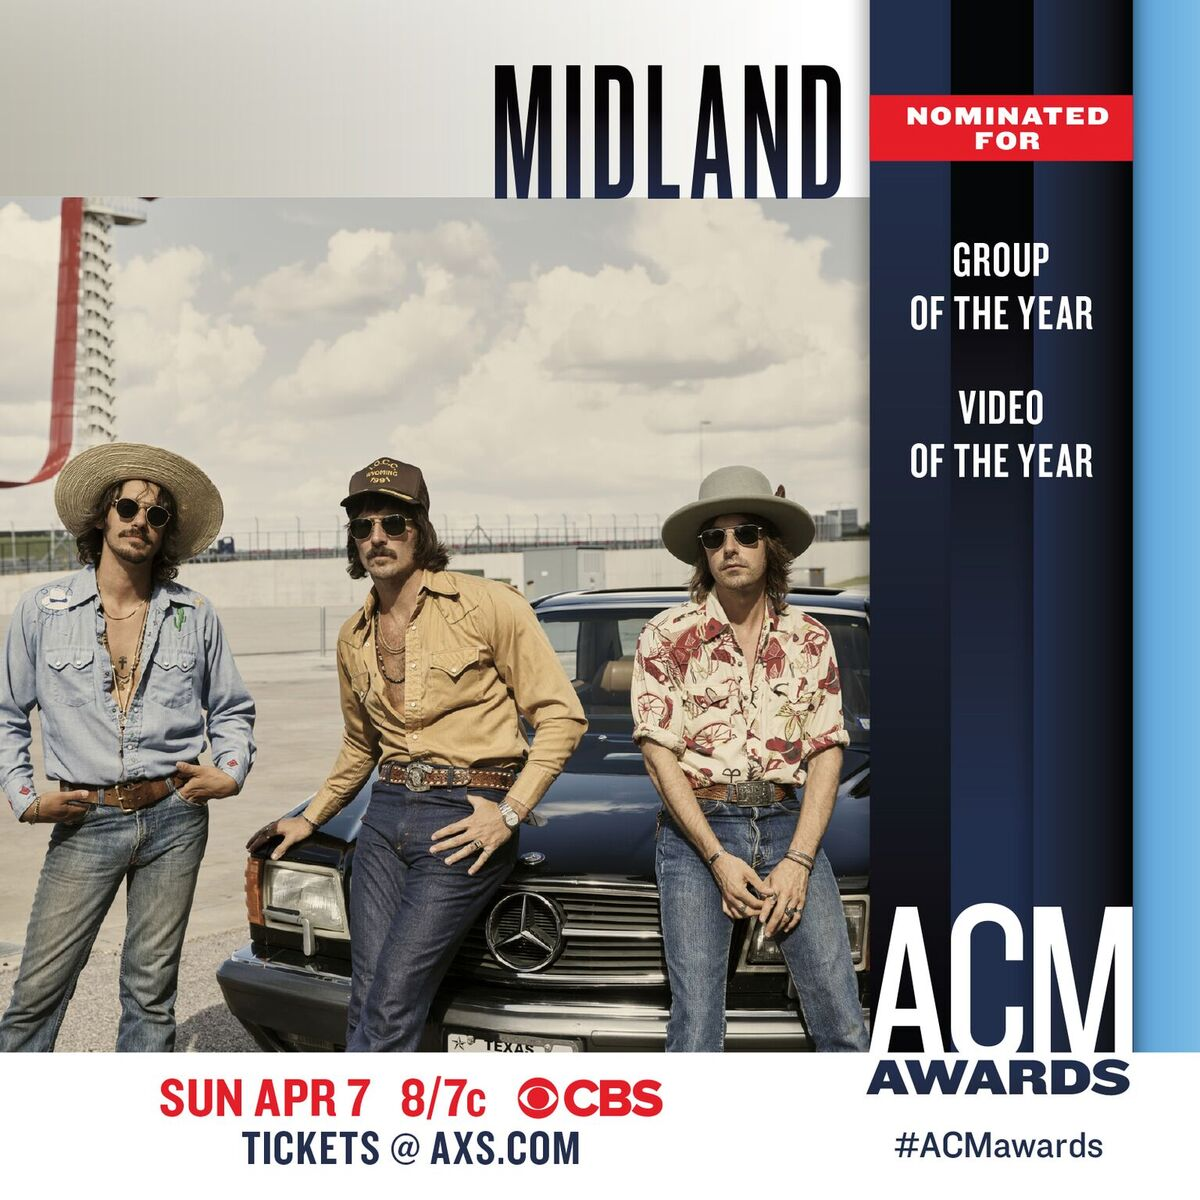 How bout that?! Two @ACMawards nods. We&#39;re honored to be nominated for the 2nd year in a row...We&#39;re feeling lucky in 2019. <br>http://pic.twitter.com/fMHhbgymXK